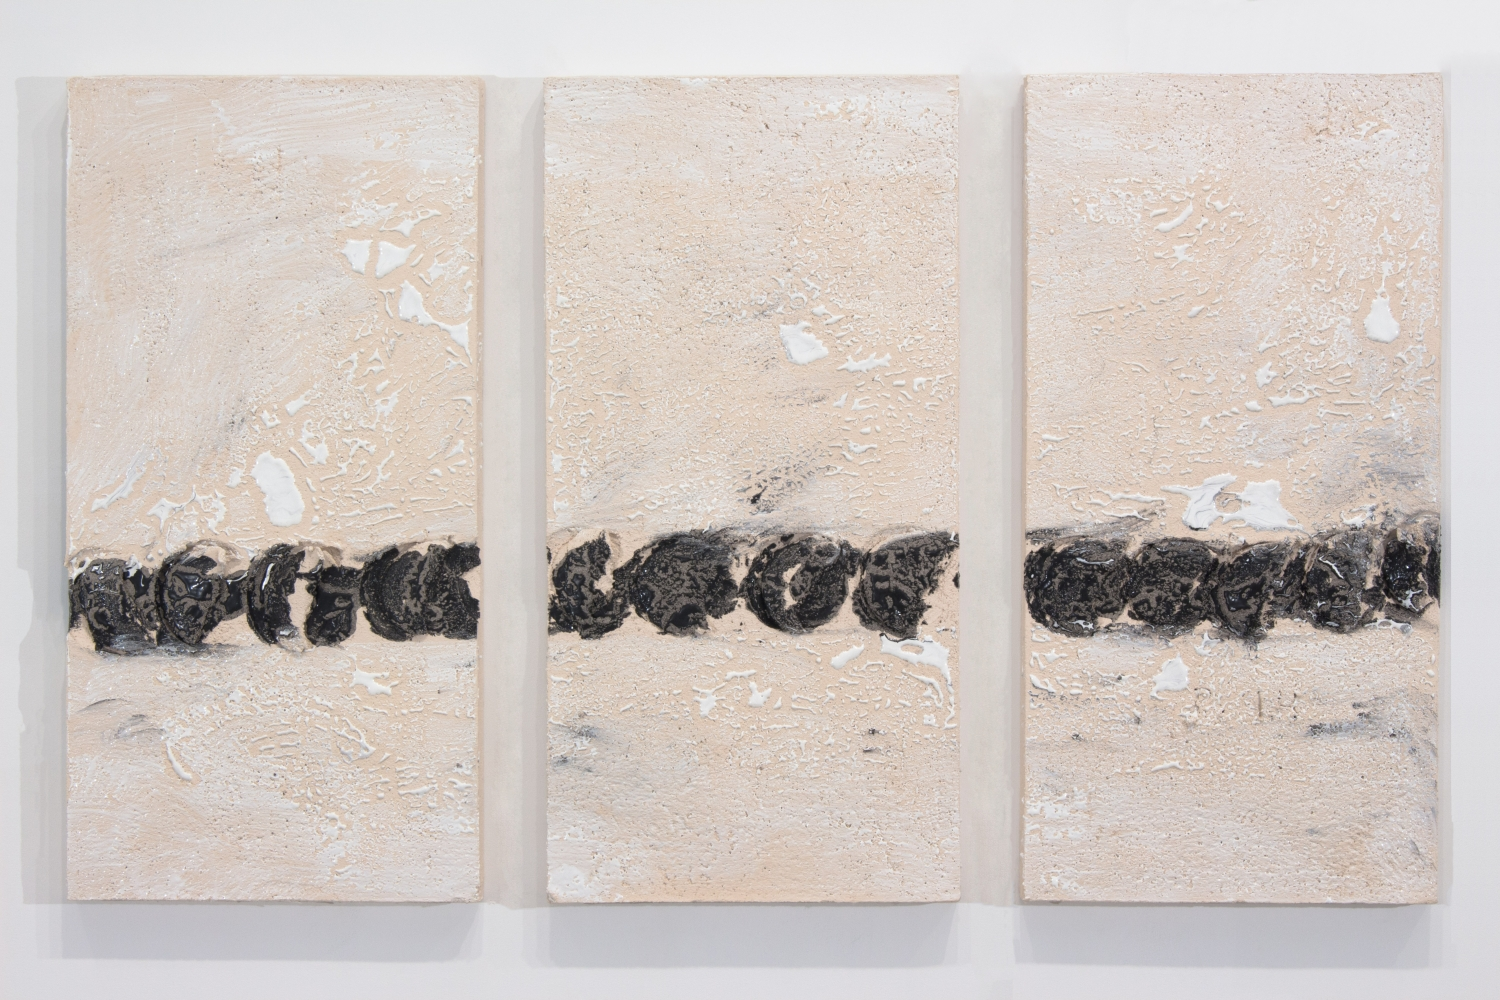 triptych of white ceramic panels with a line of black circular gouges across the lower half of each panel